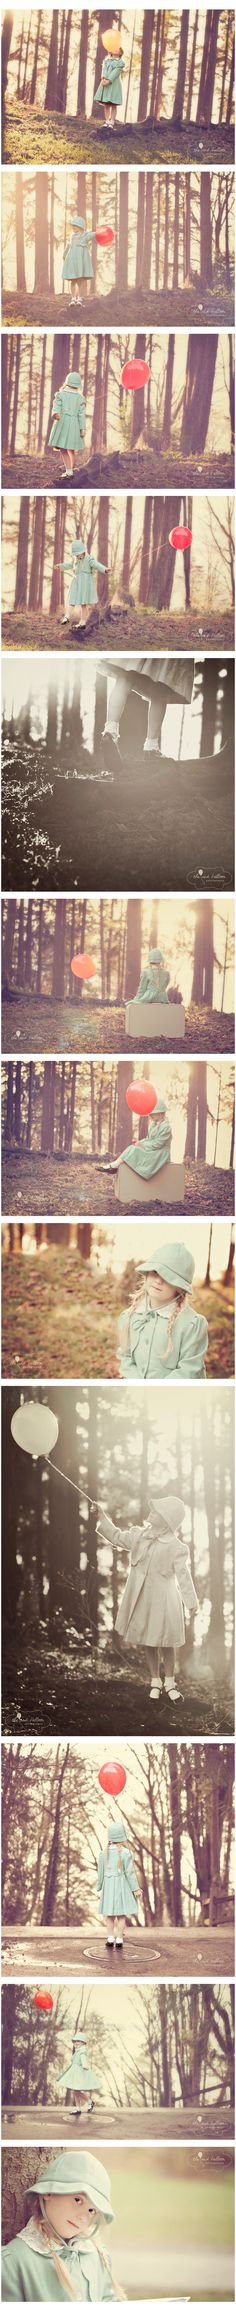 love balloon photos / love this style photography